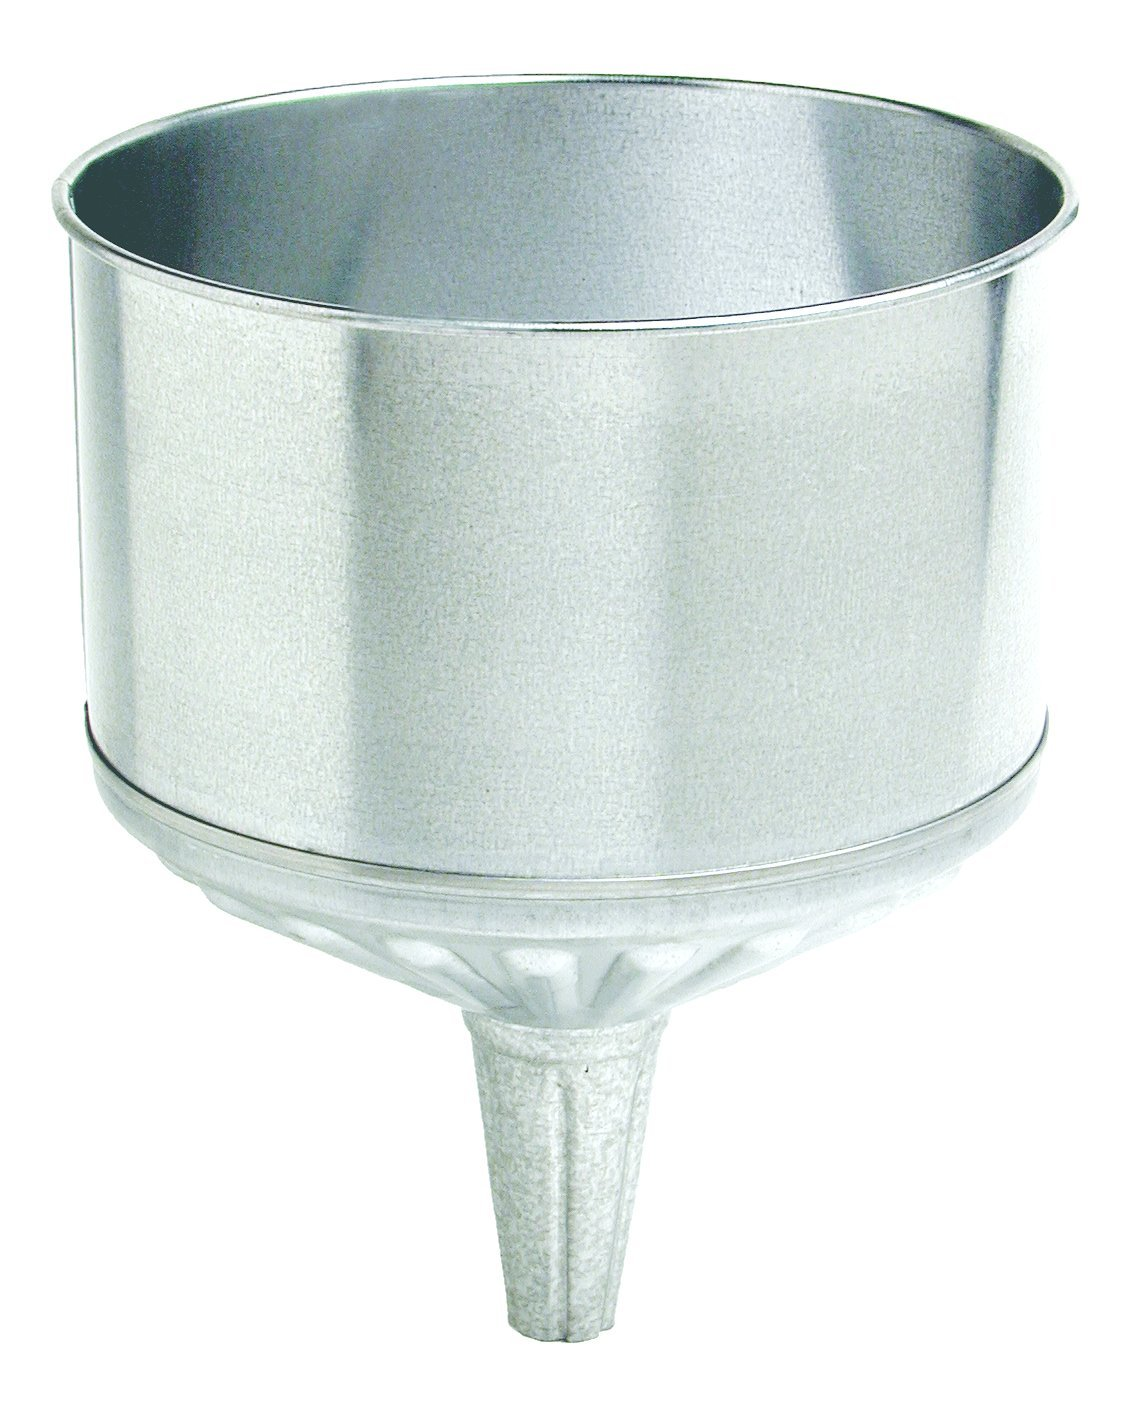 Plews 75-004 Steel Galvanized Funnel - 8 Quart Capacity